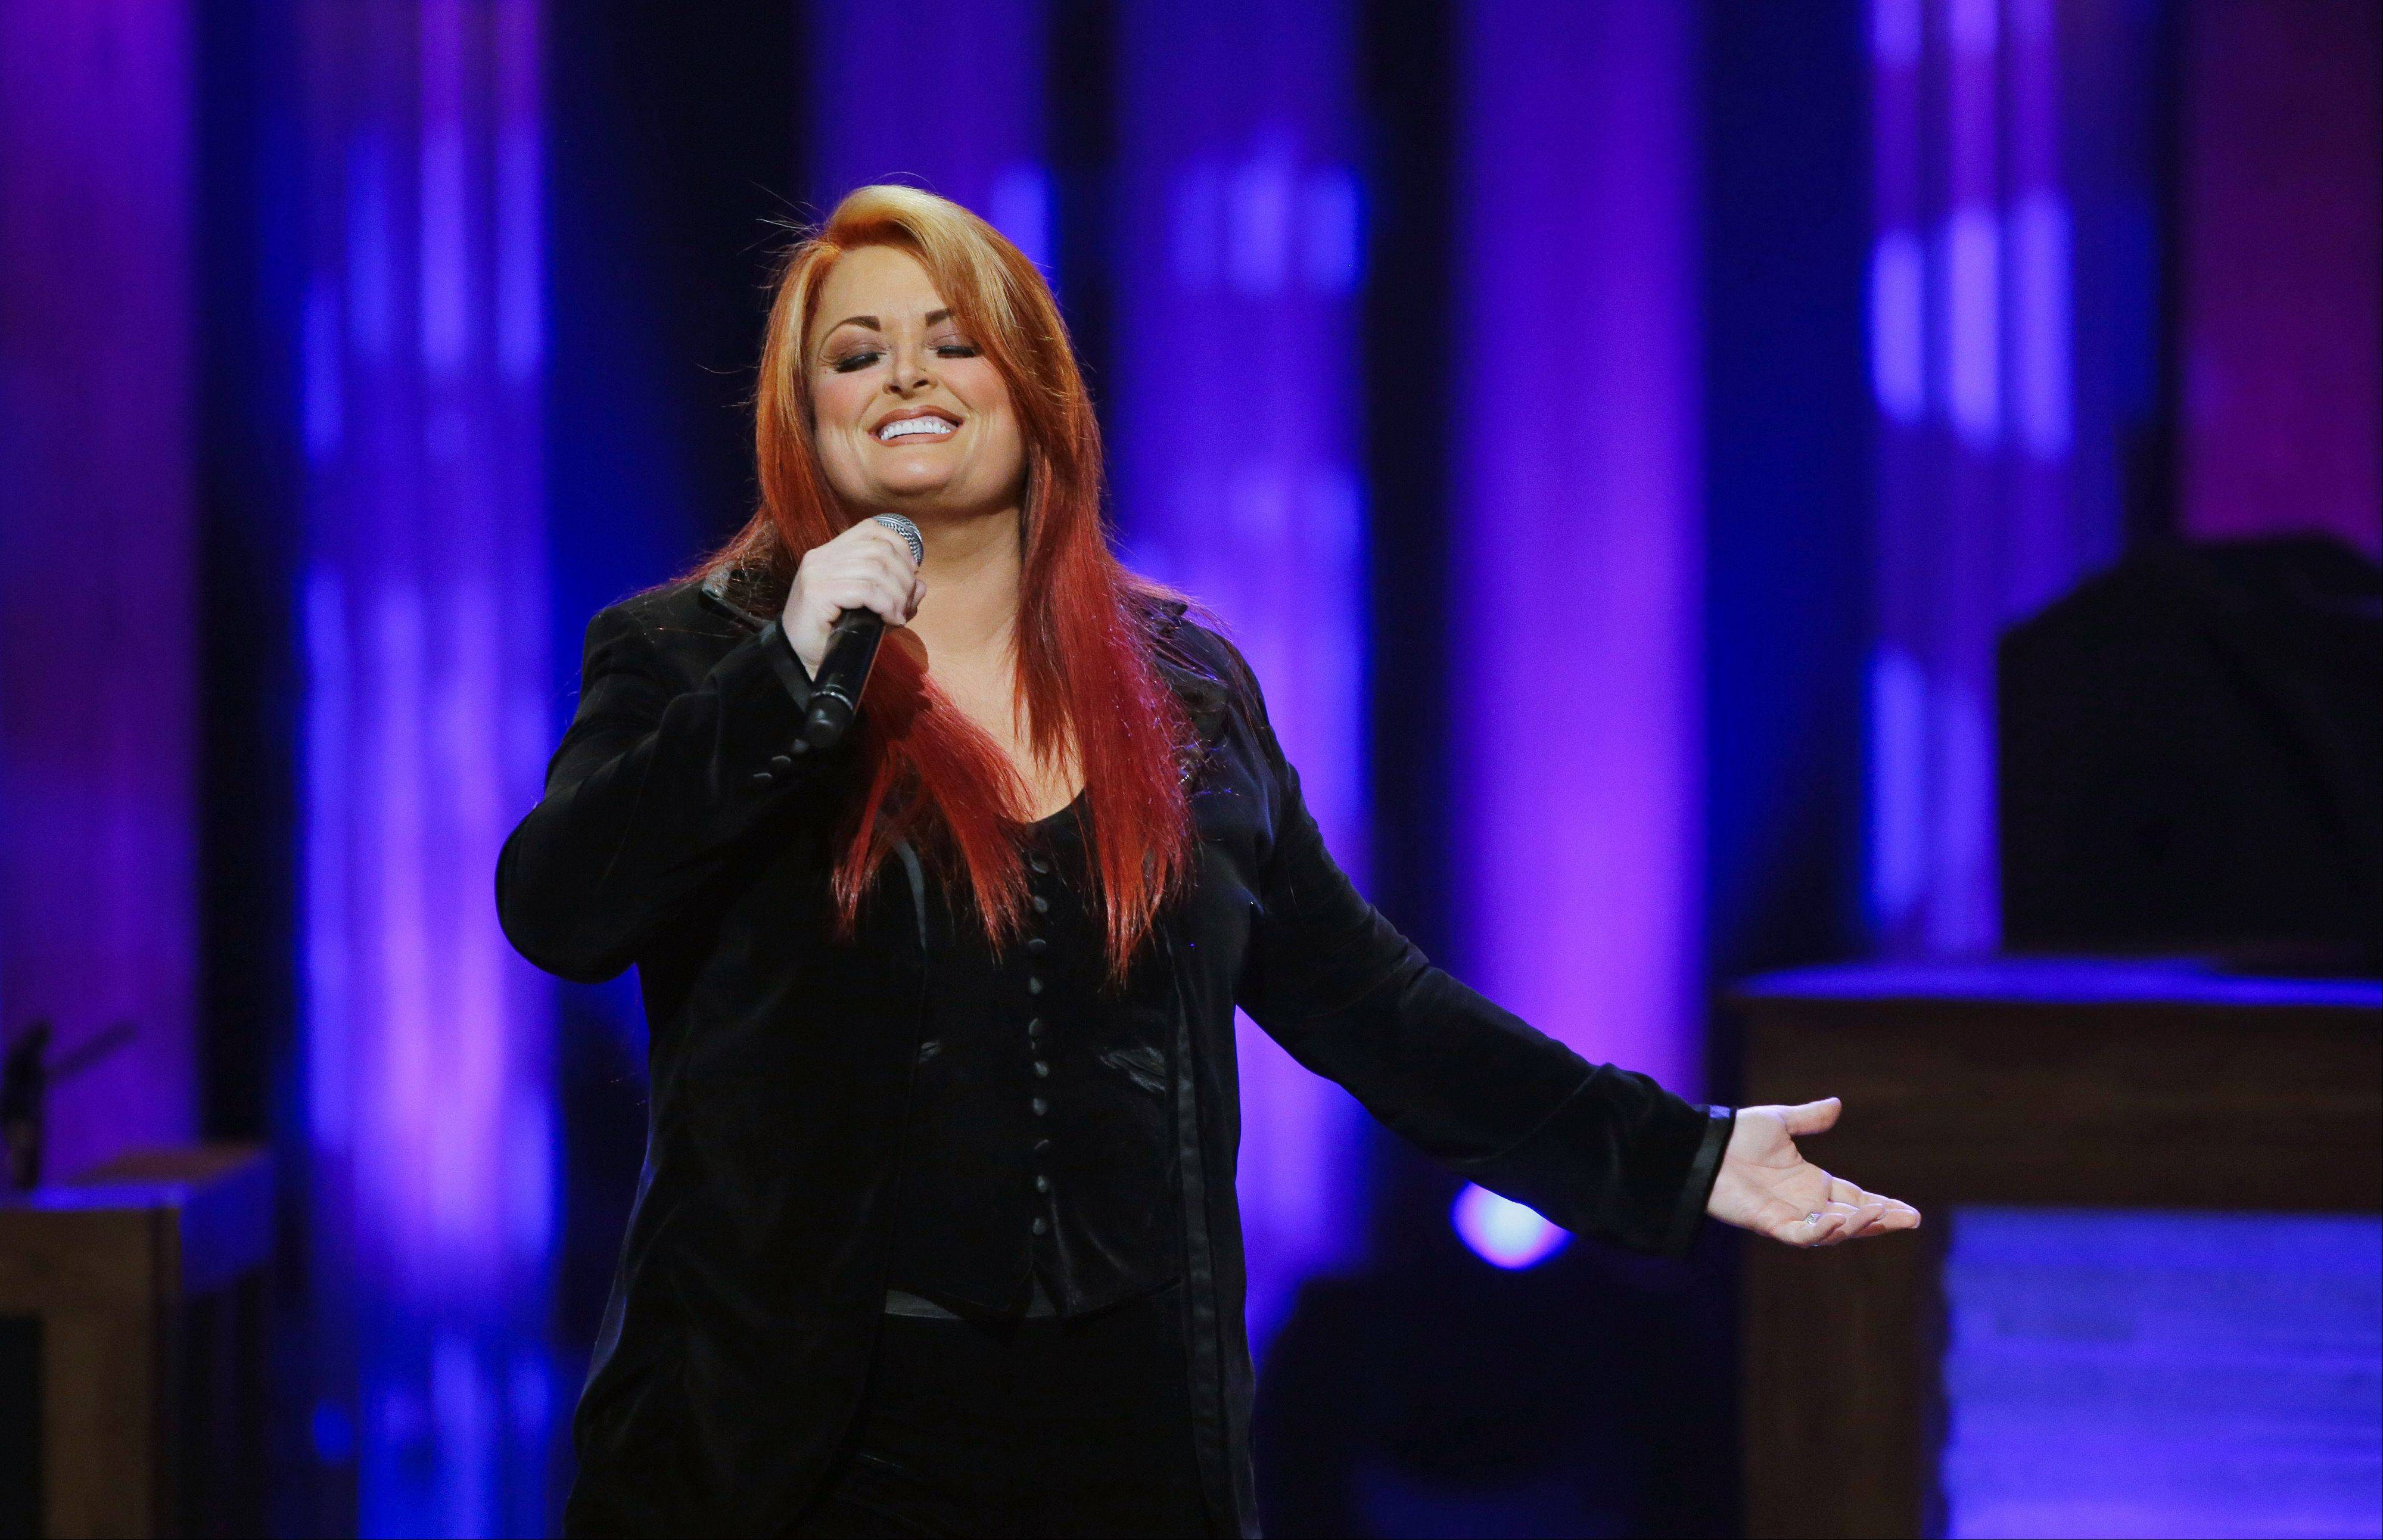 Wynonna Judd will perform at 8 p.m. Friday, Dec. 13, at the Arcada Theatre in St. Charles.